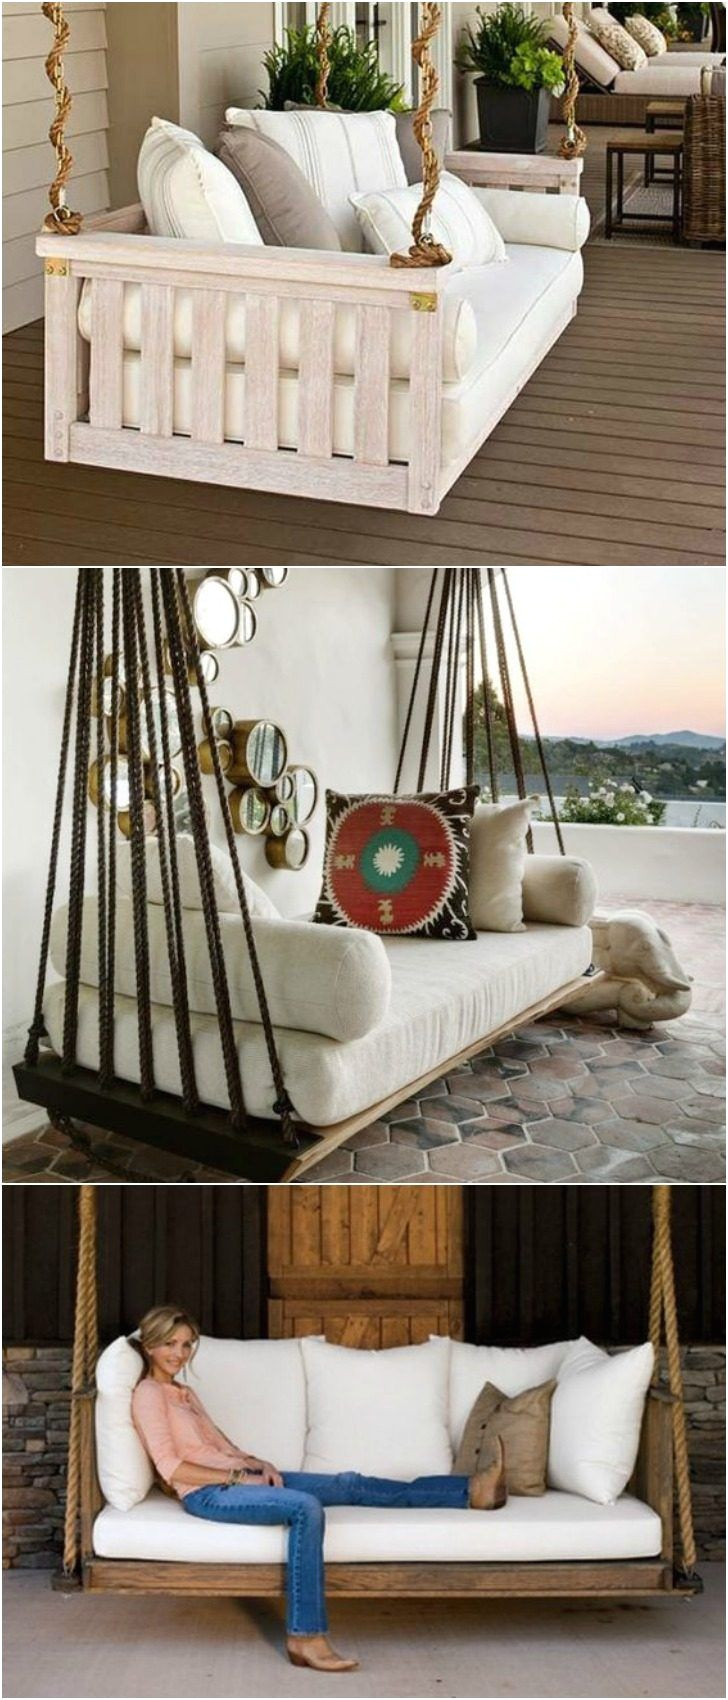 7 diy outdoor swings that ll make warm nights even better 6 is just stunning patiooutdoorfurniture best diy outdoor pallet recycled swing top